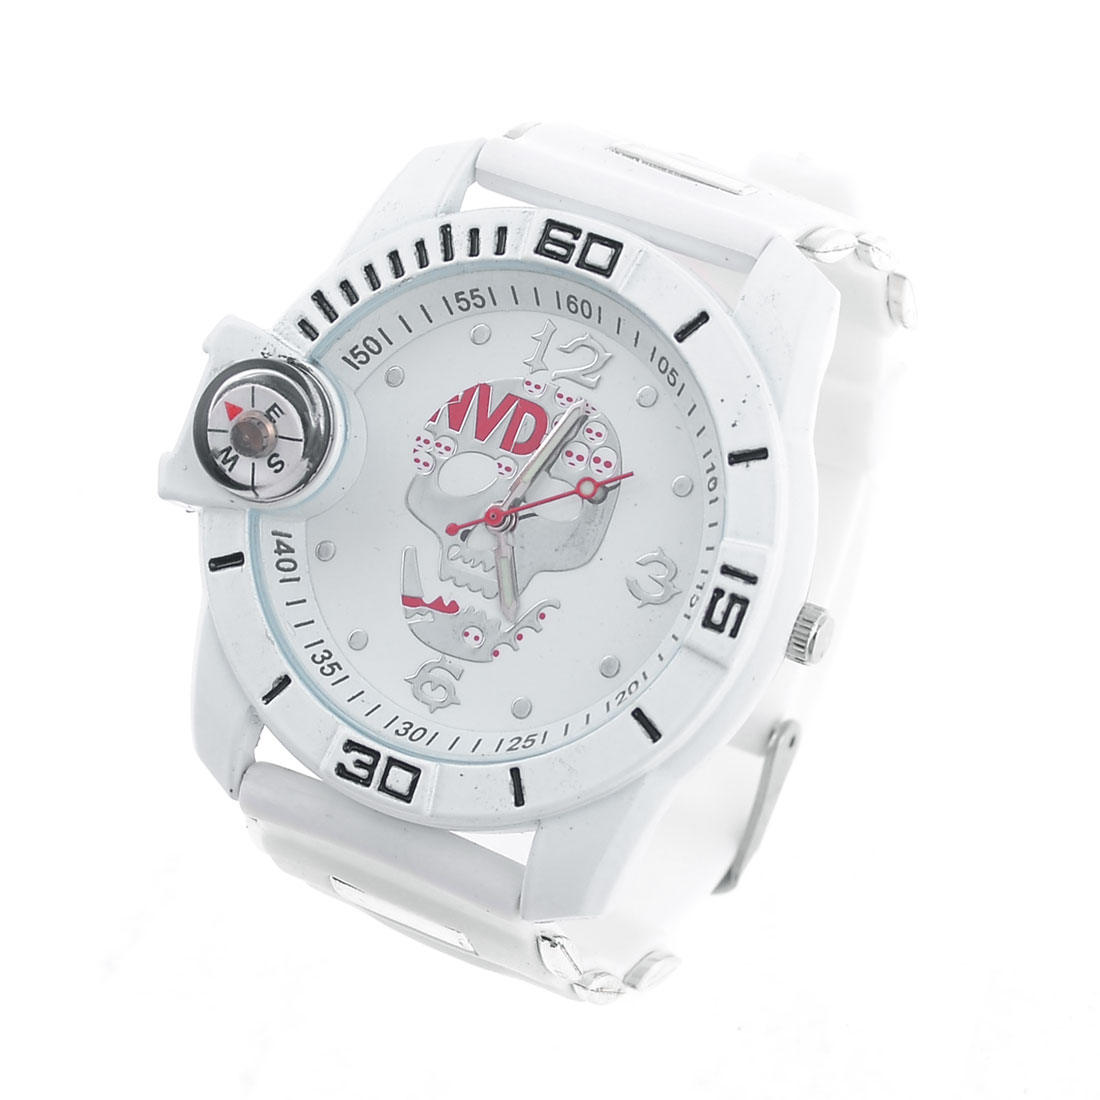 Women Lady Single Pin Adjustable Plastic Wrist Band Watch White w Compass